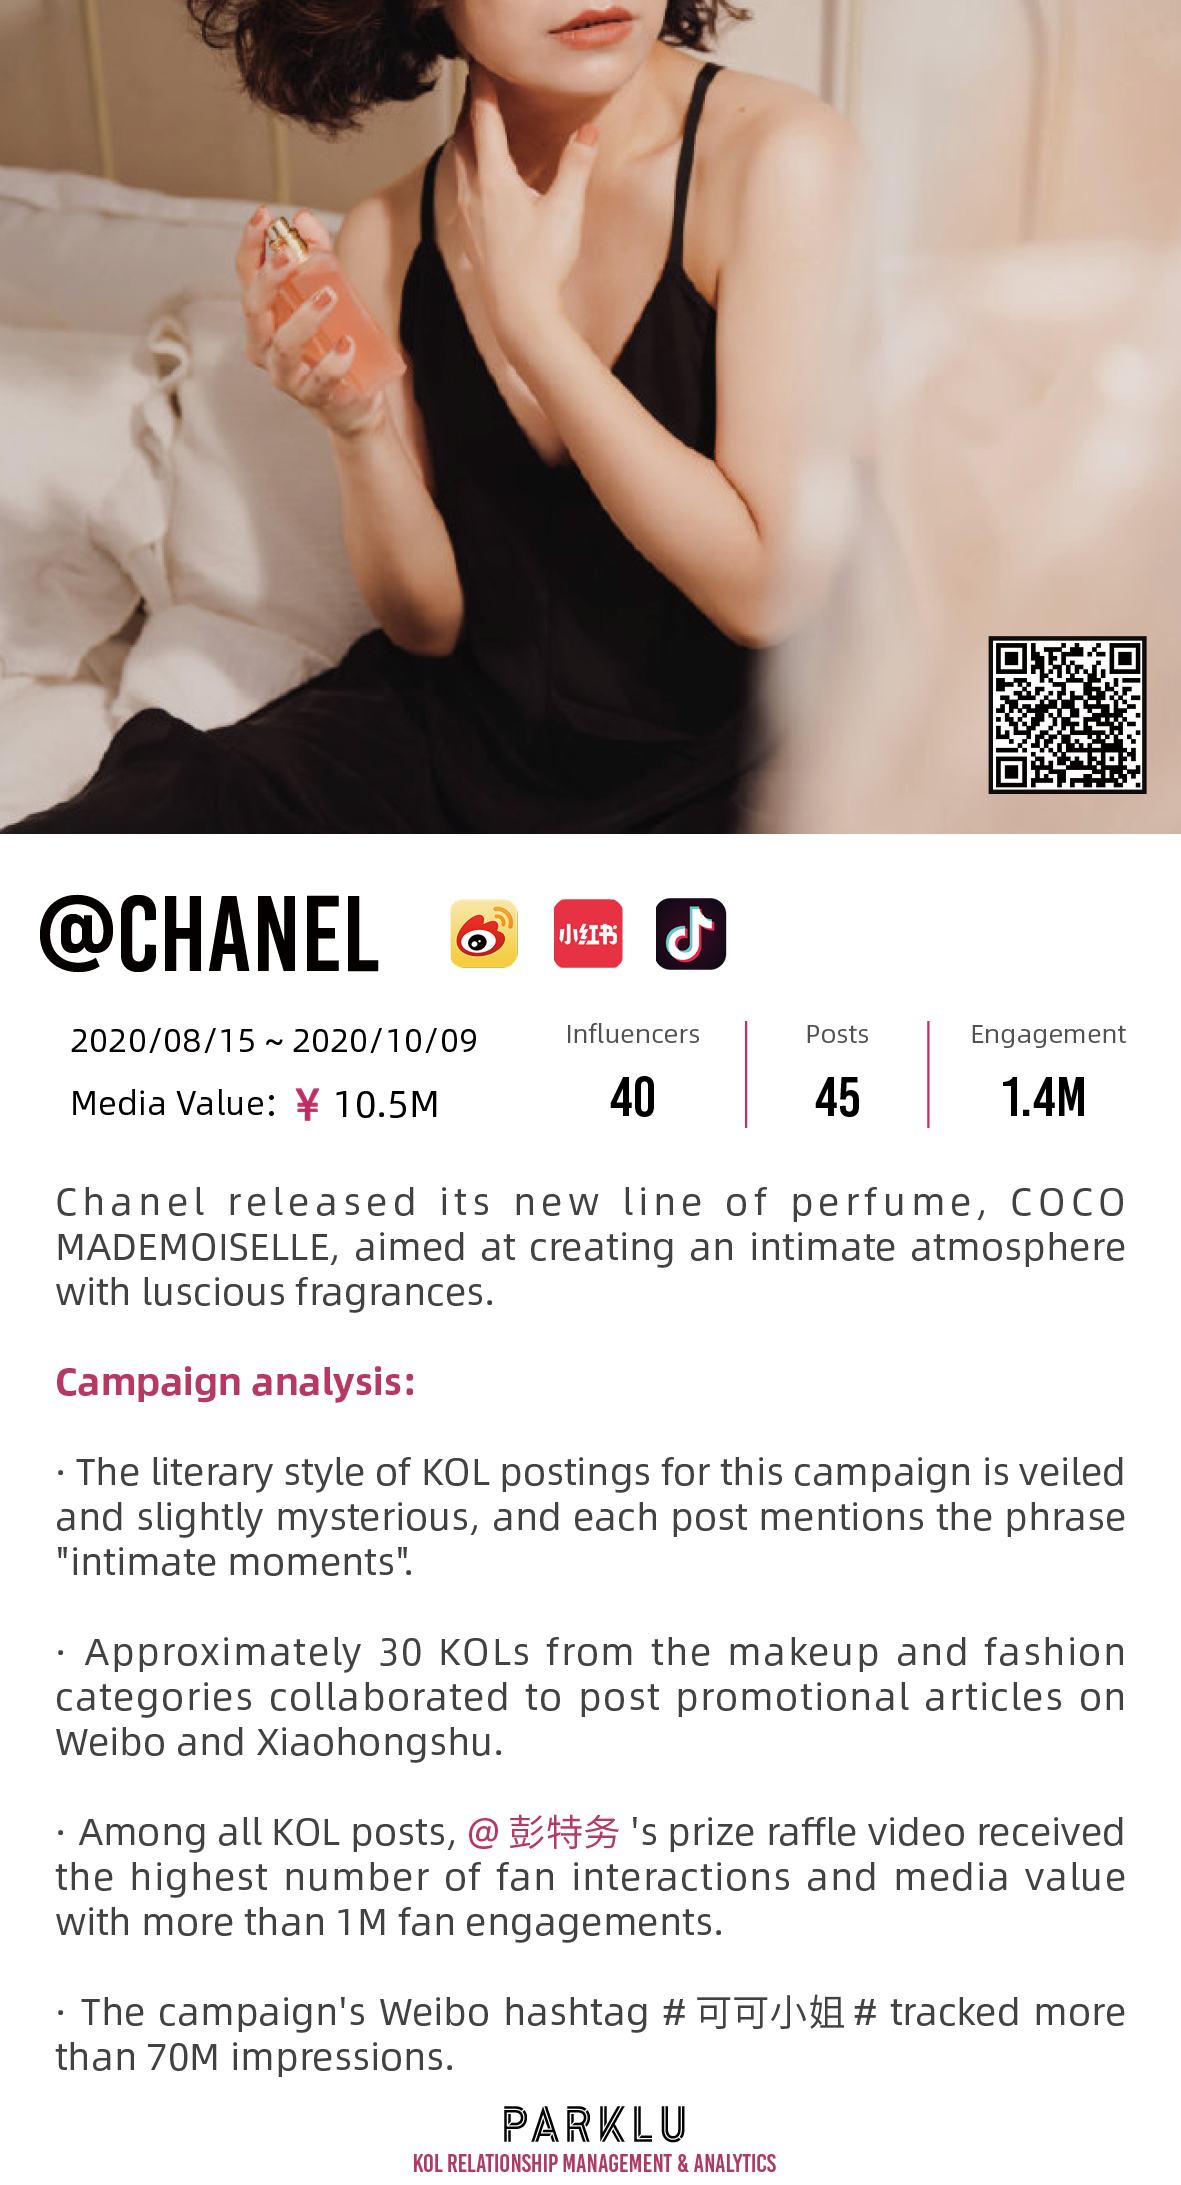 Chanel perfume COCO MADEMOISELLE KOL Marketing